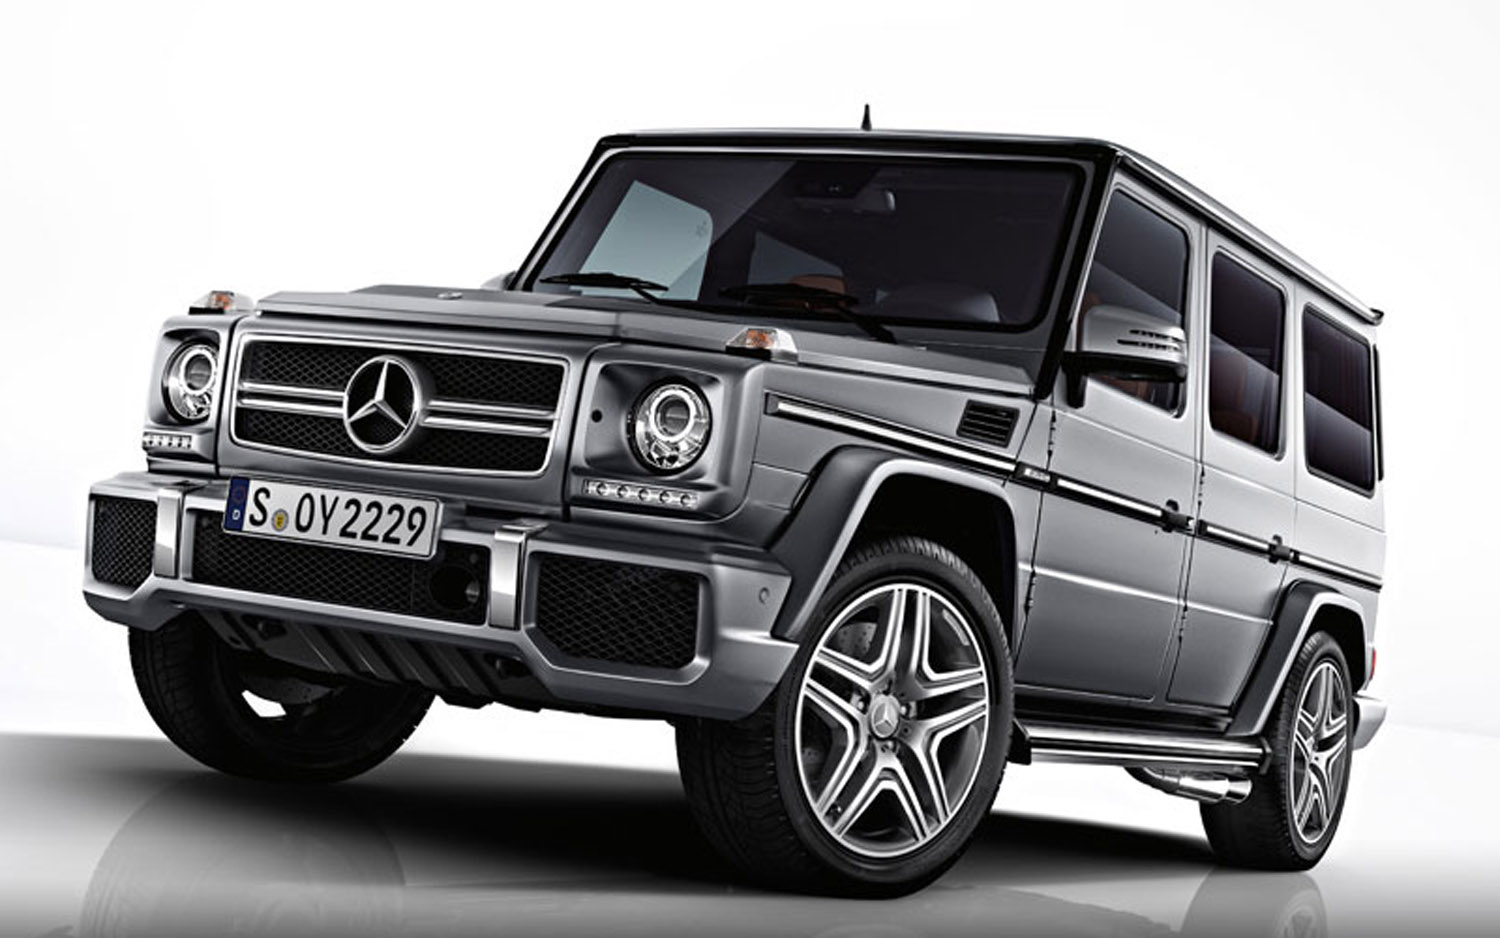 Mercedes benz g class 4x4 and 6x6 les bons viveurs l b v for 2013 mercedes benz g class